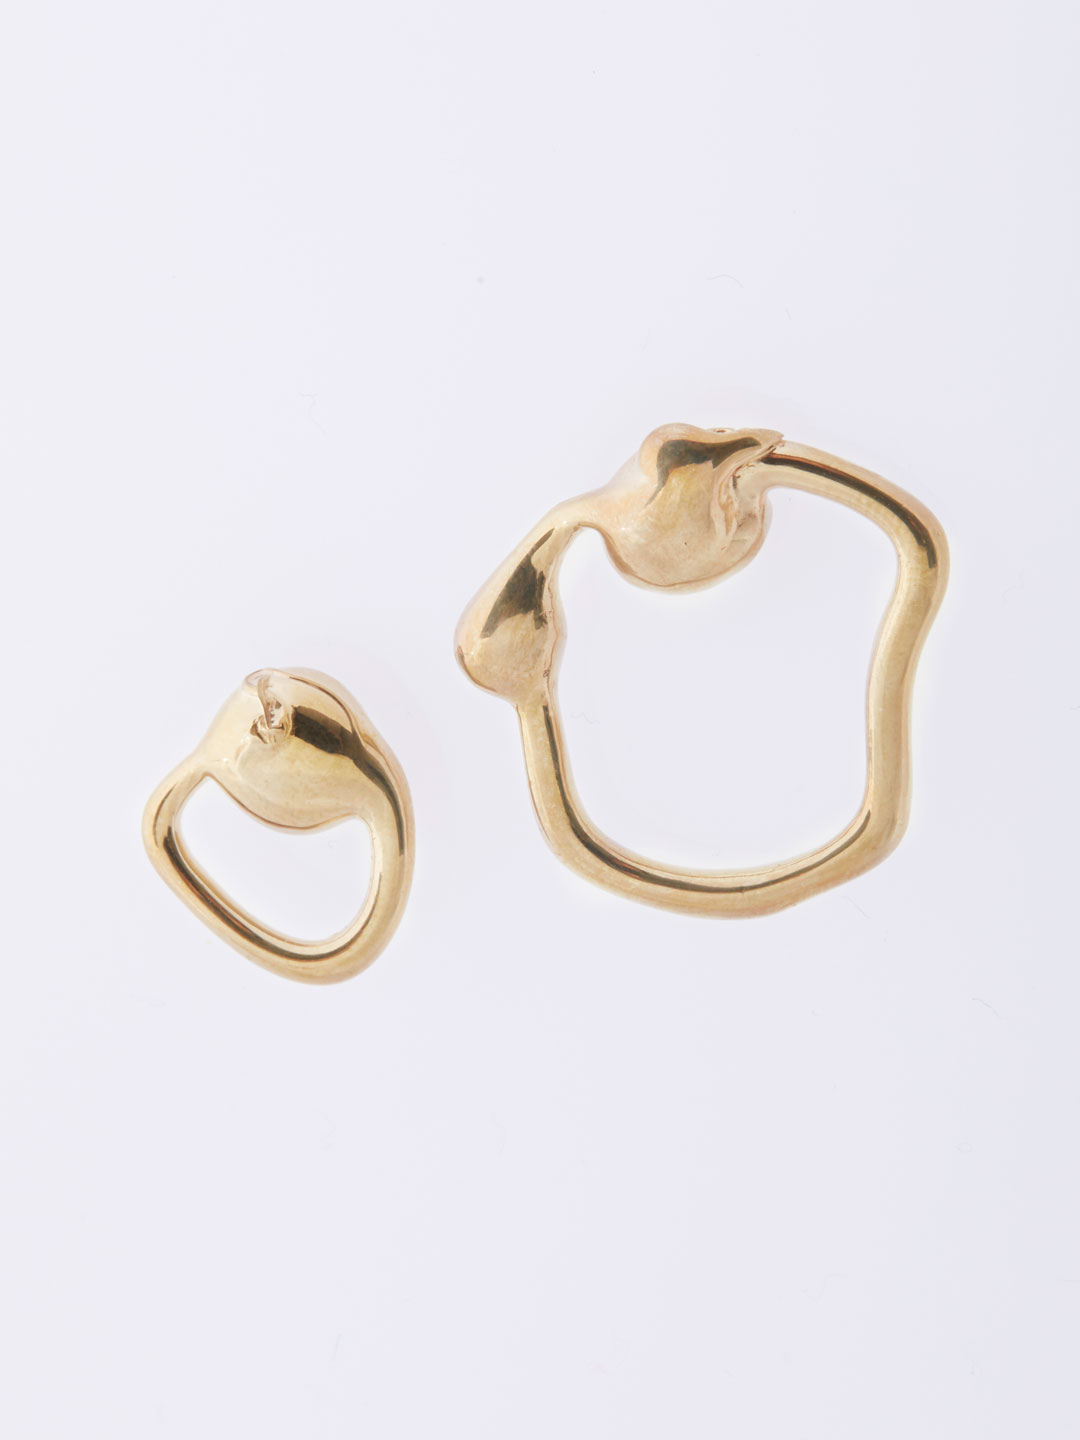 Petite Extrusion Studs Pierced Earrings - Gold